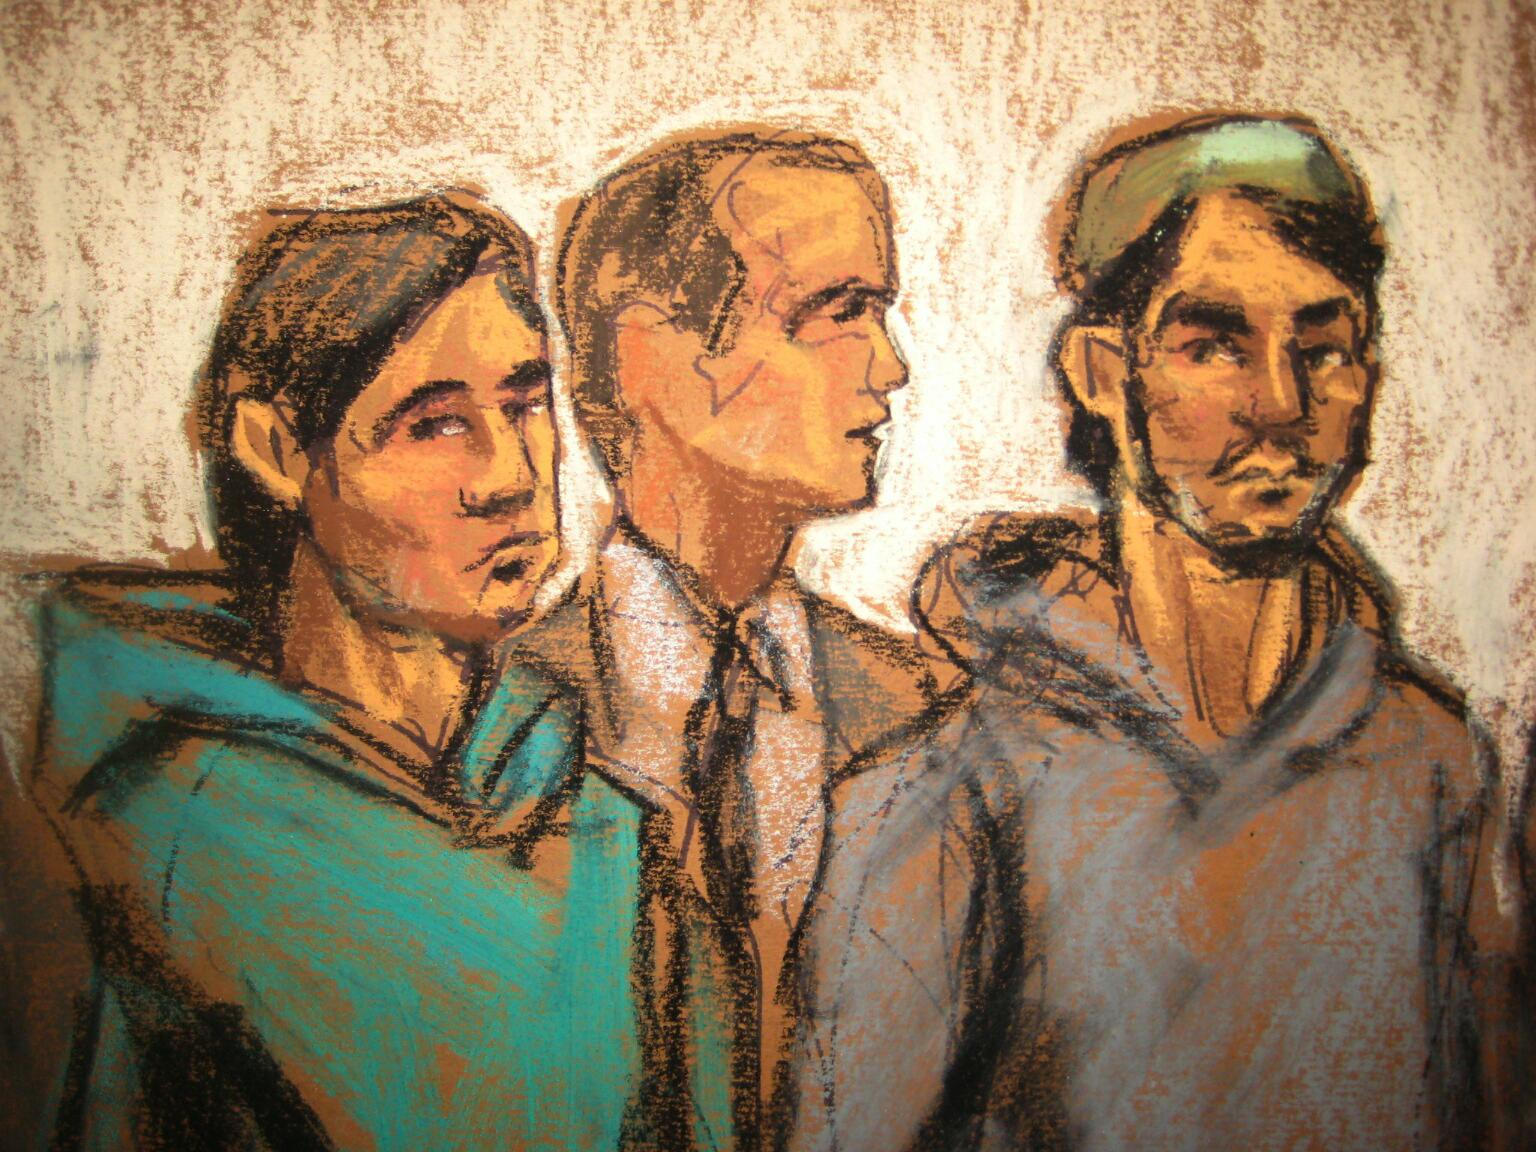 Three Brooklyn men accused in Islamic State plot